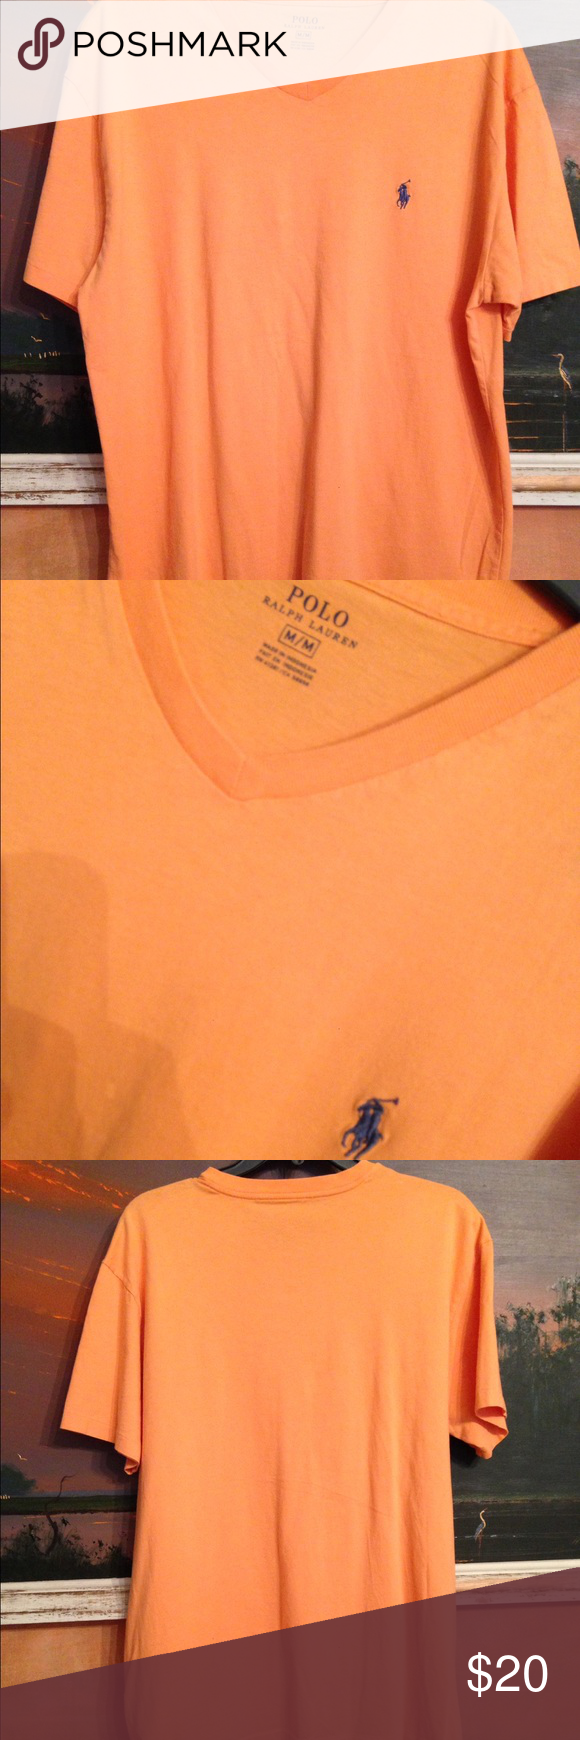 Polo Ralph Lauren orange t-shirt NWOT New condition. Never worn. Size Medium. Length 27 inches. Polo by Ralph Lauren Shirts Tees - Short Sleeve